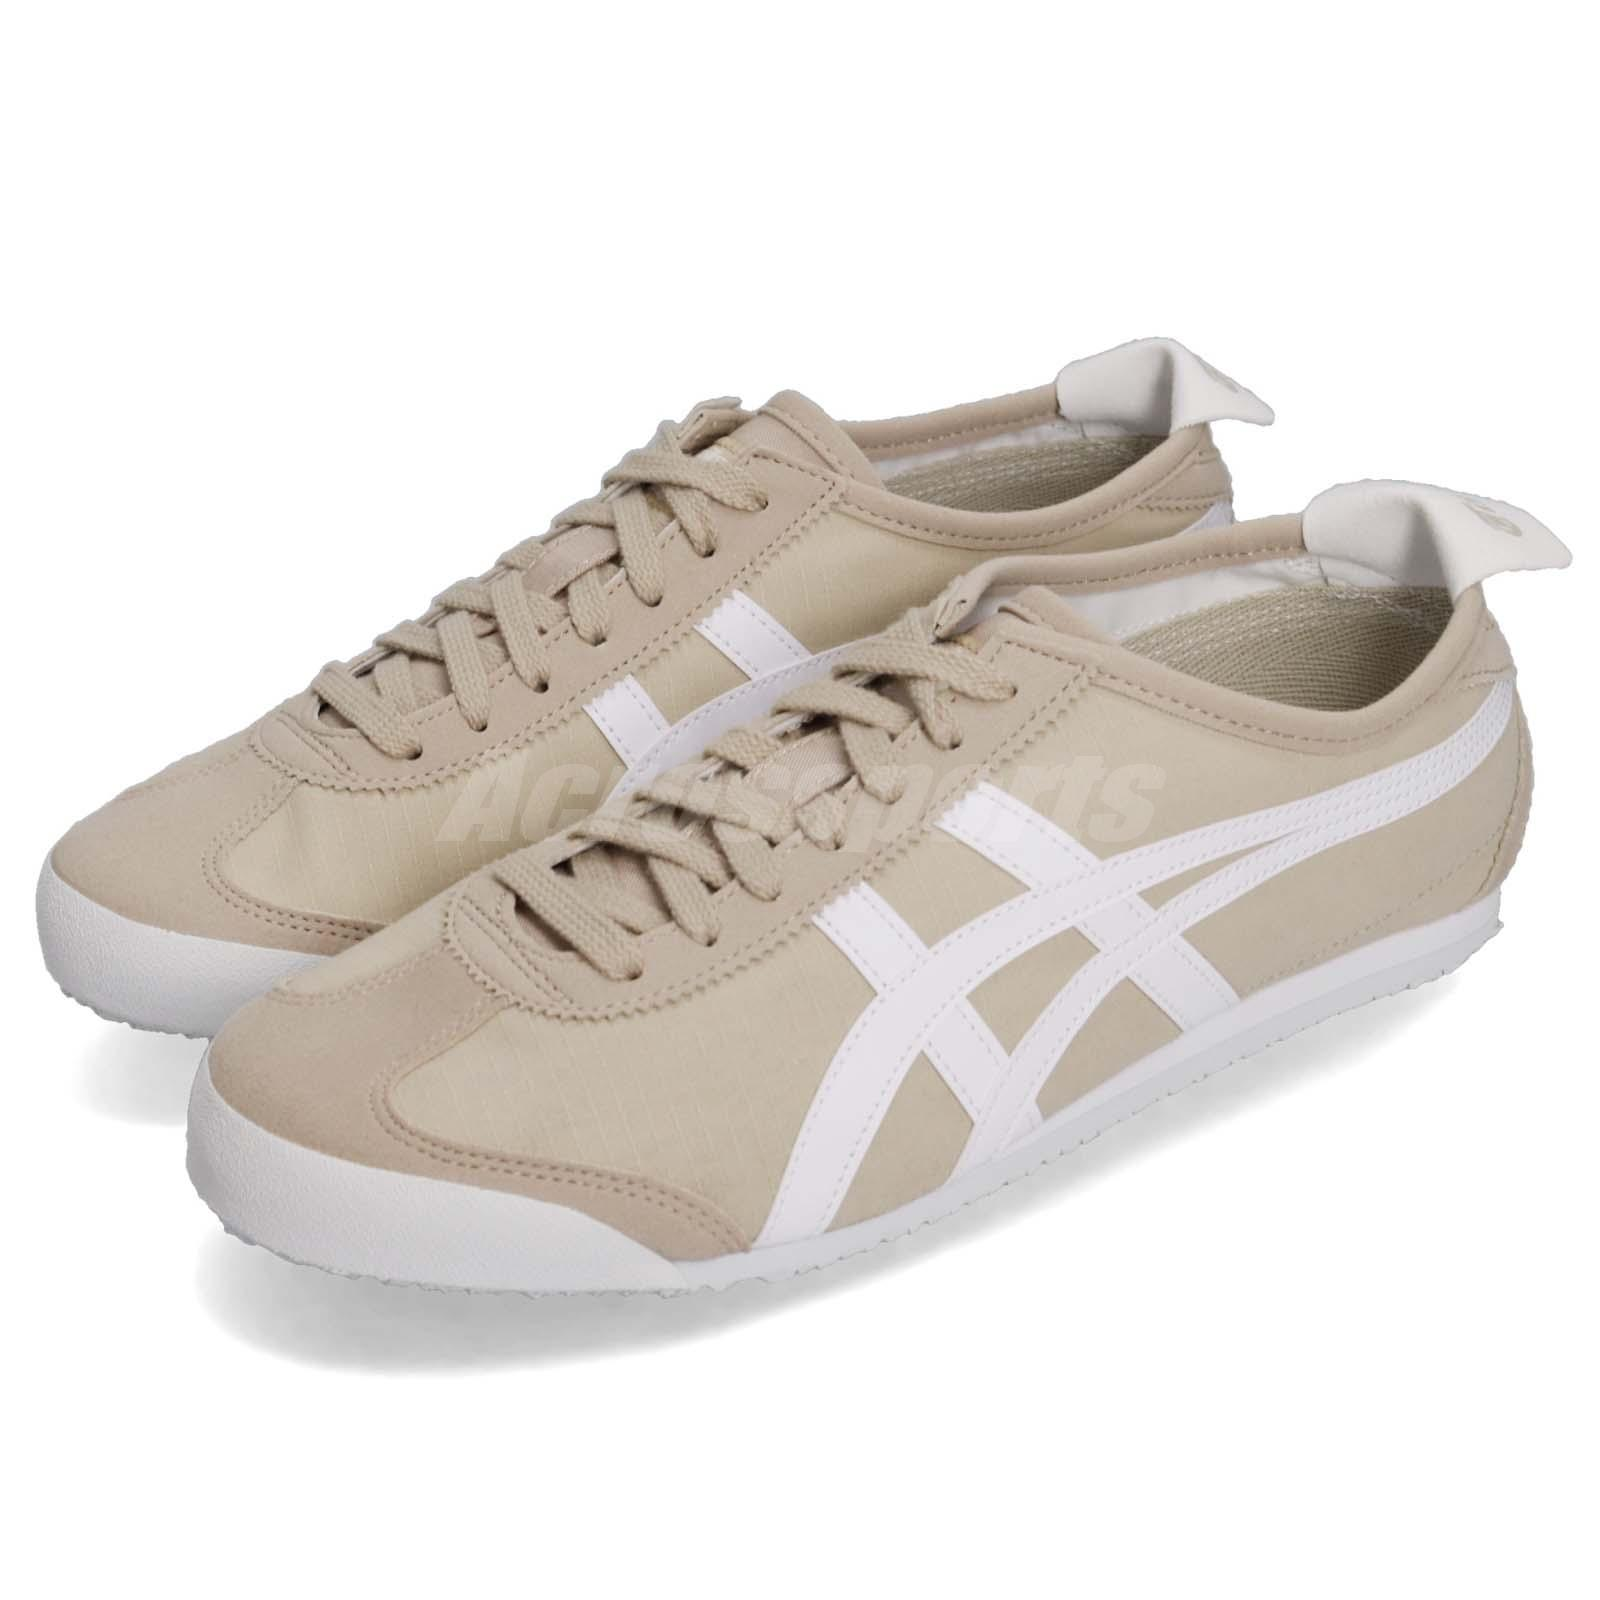 Details about Asics Onitsuka Tiger Mexico 66 Simply Taupe White Men Women Shoes 1183A223 250